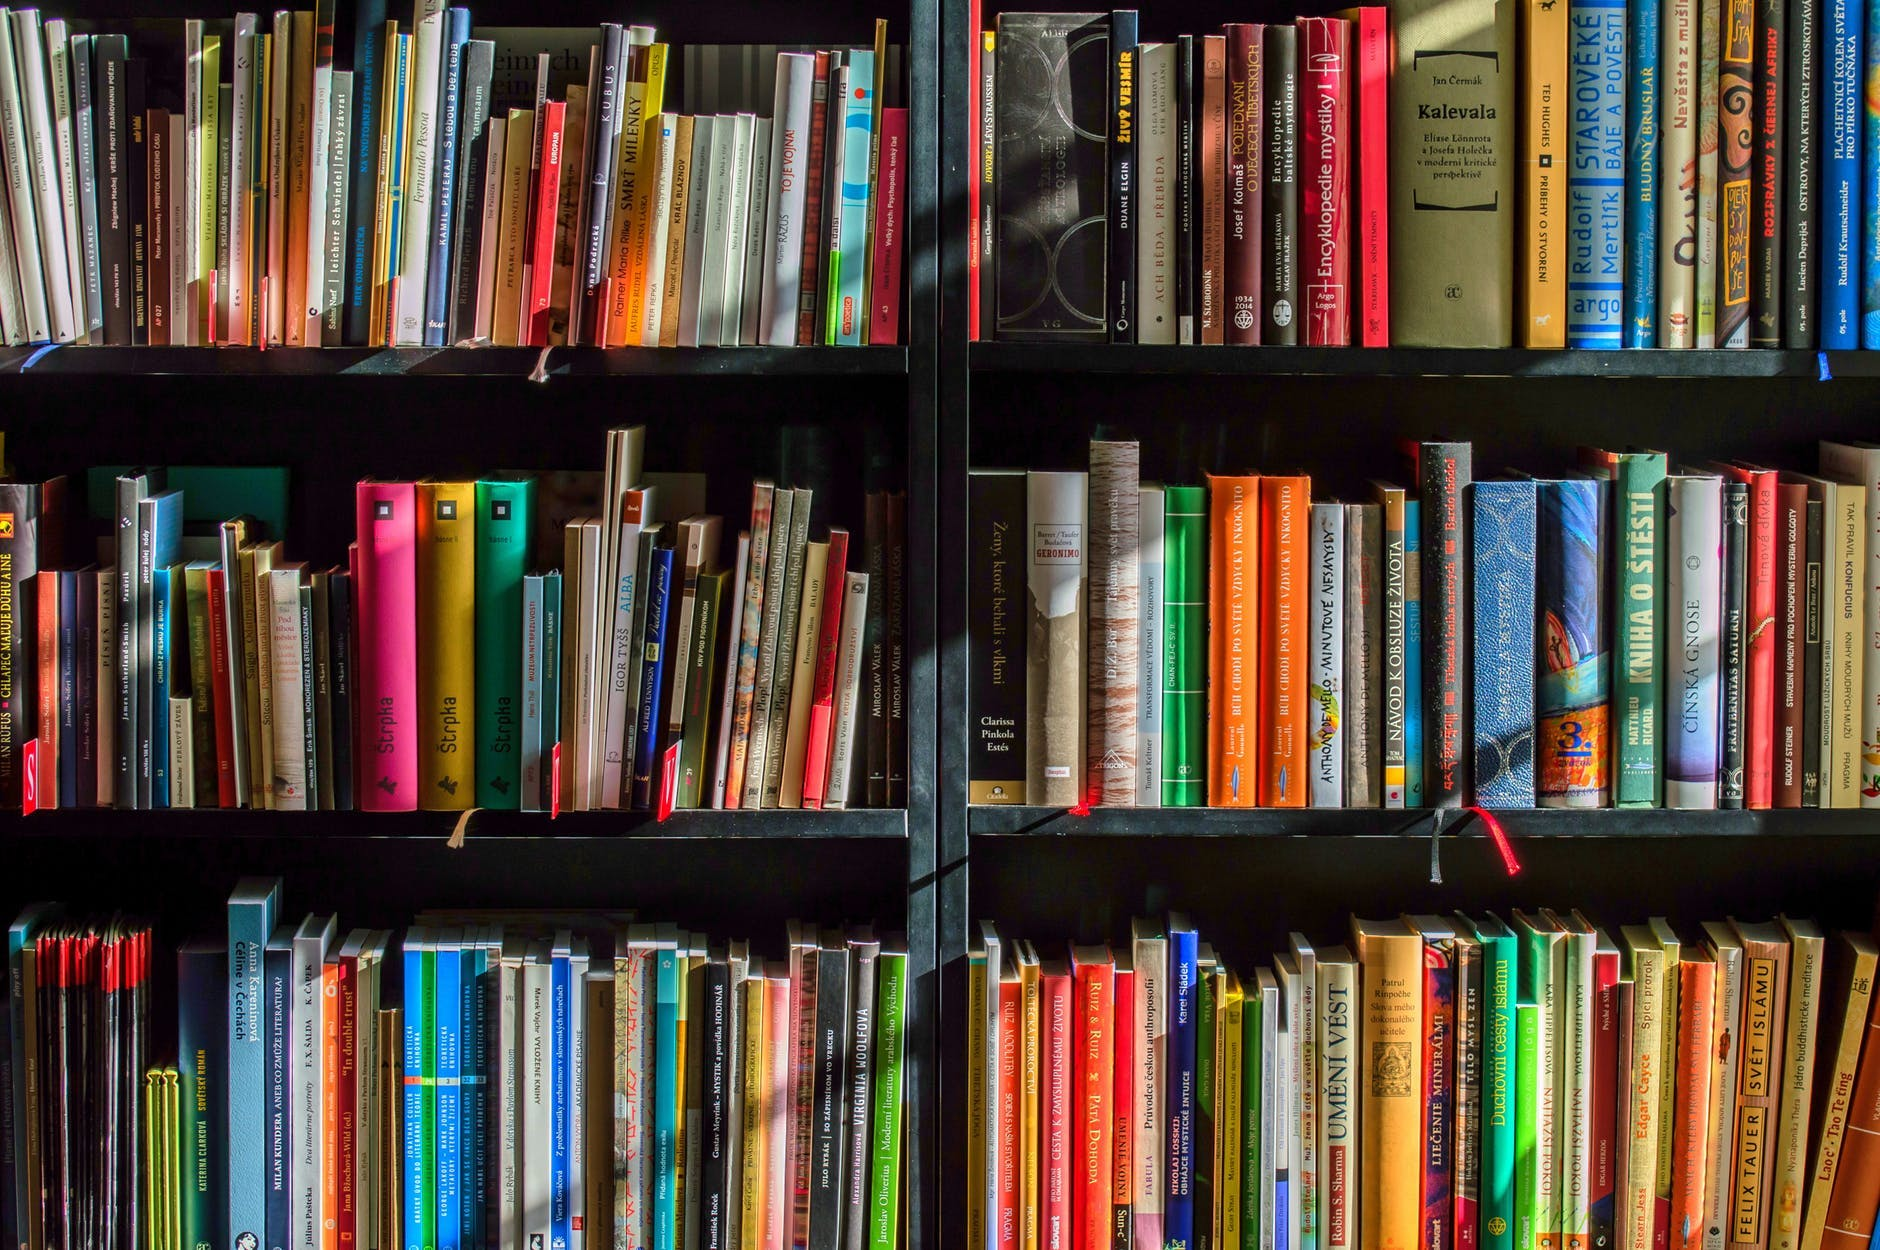 Shelving,Bookcase,Shelf,Book,Publication,Library,Bookselling,Furniture,Cyclone,Collection